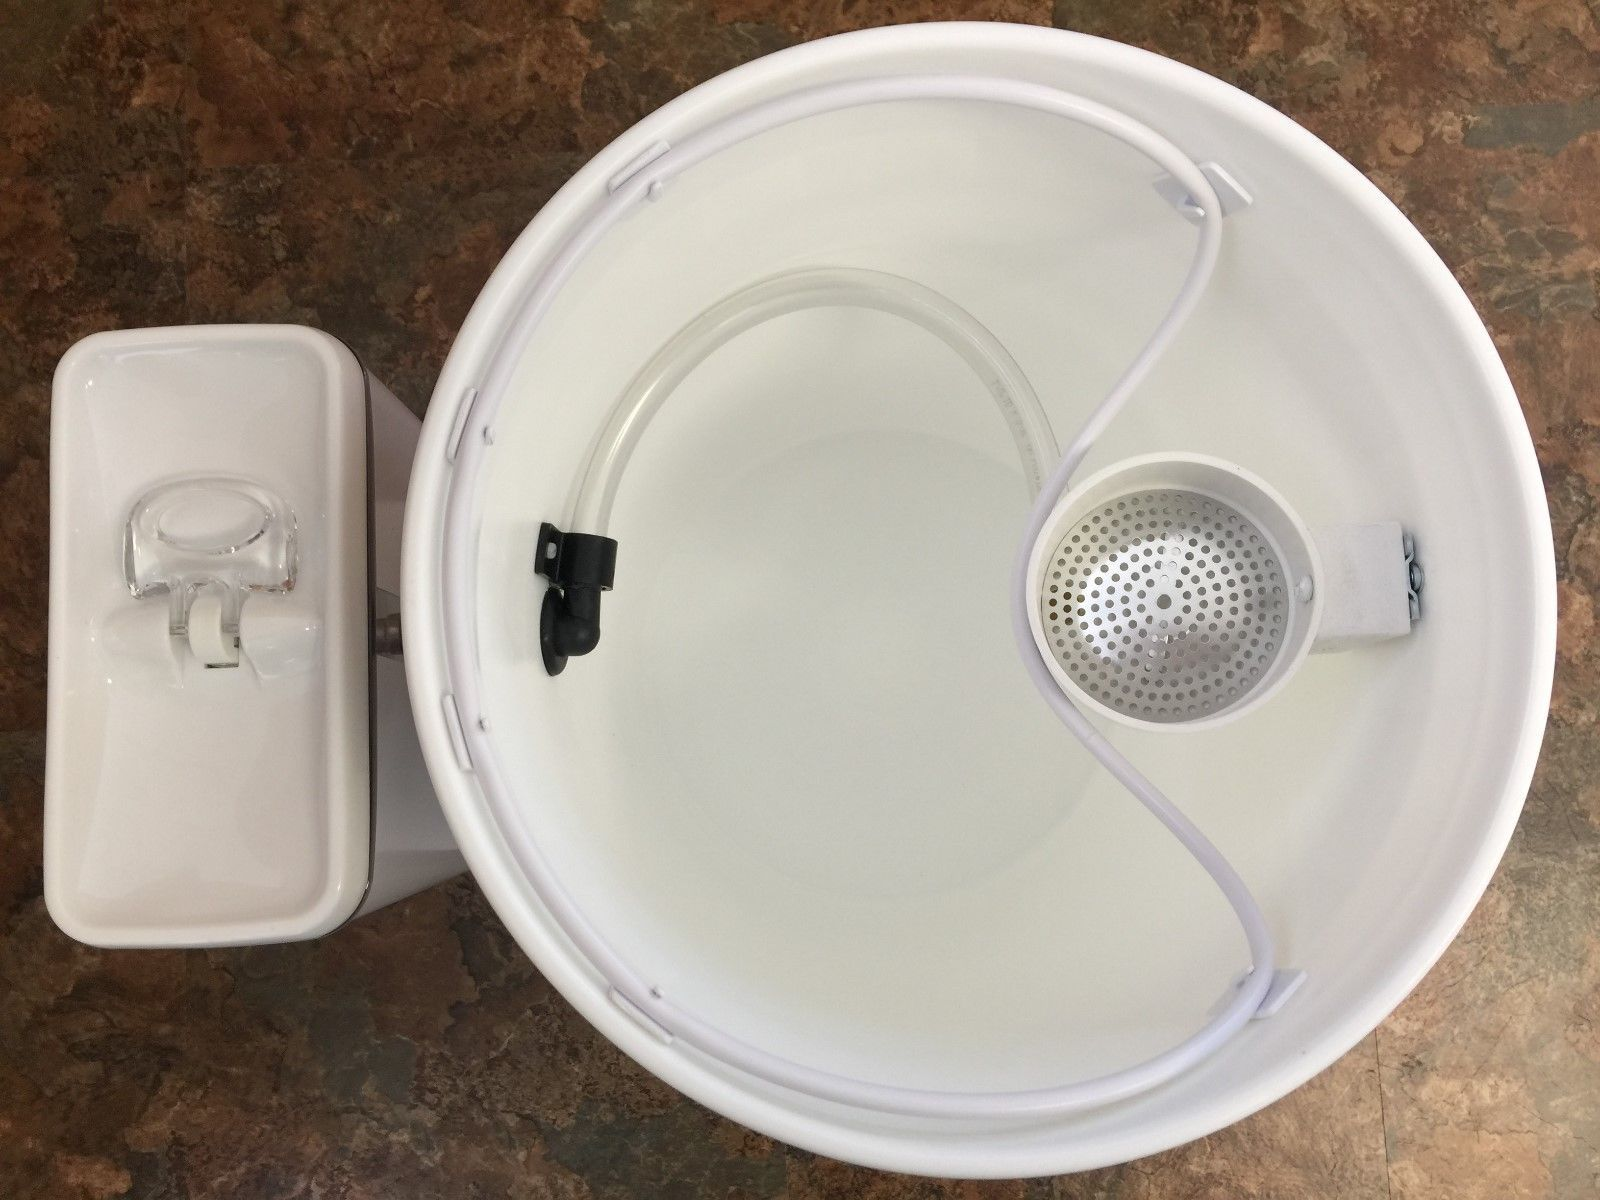 Camping Composting Toilet : Smartjon composting toilet ventless airstream camper conversion